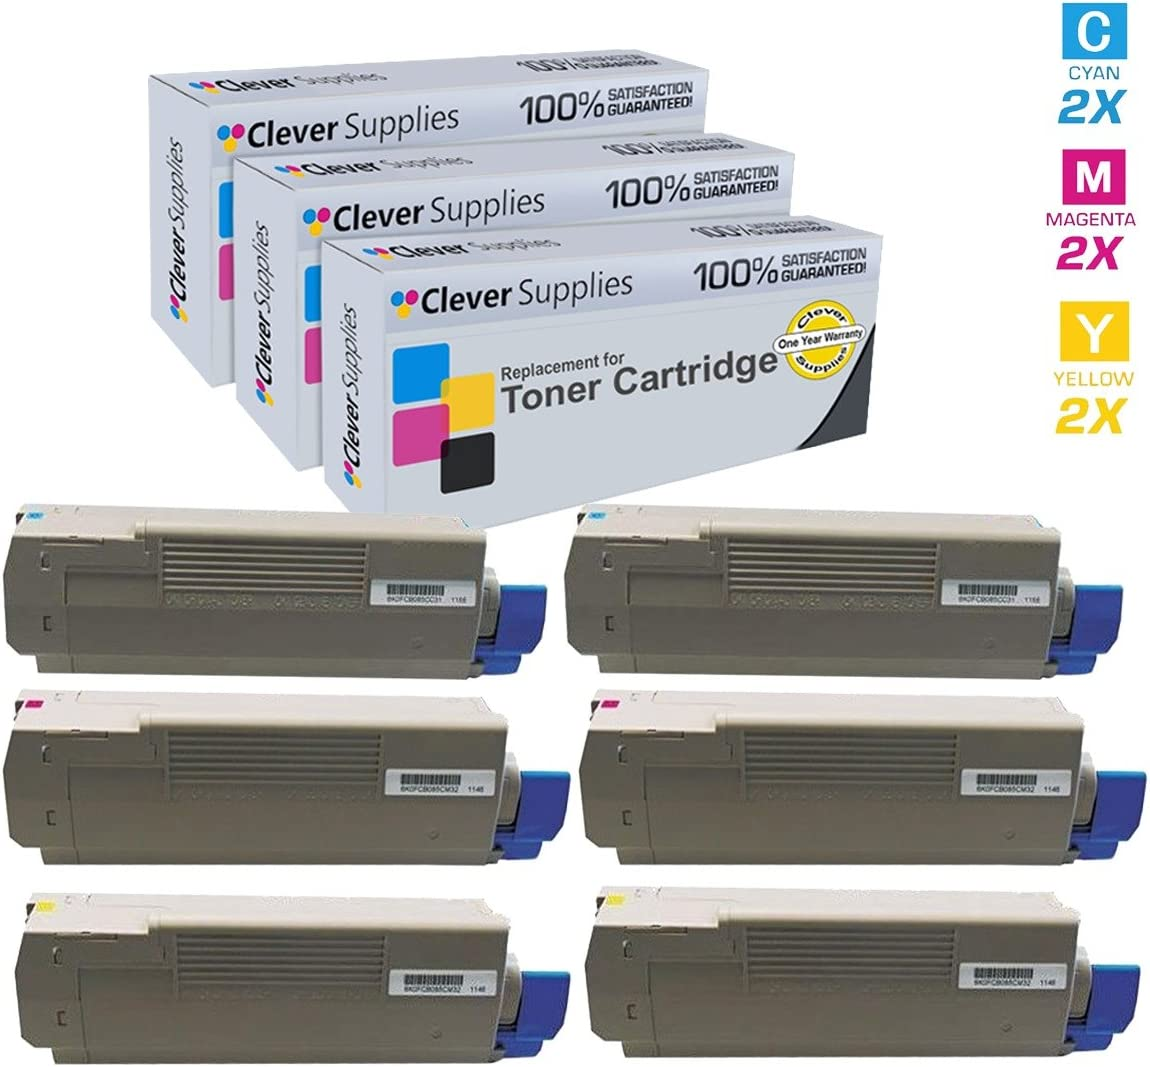 C610DN Cyan Works with: C610 On-Site Laser Compatible Toner Replacement for Oki-Okidata 44315303